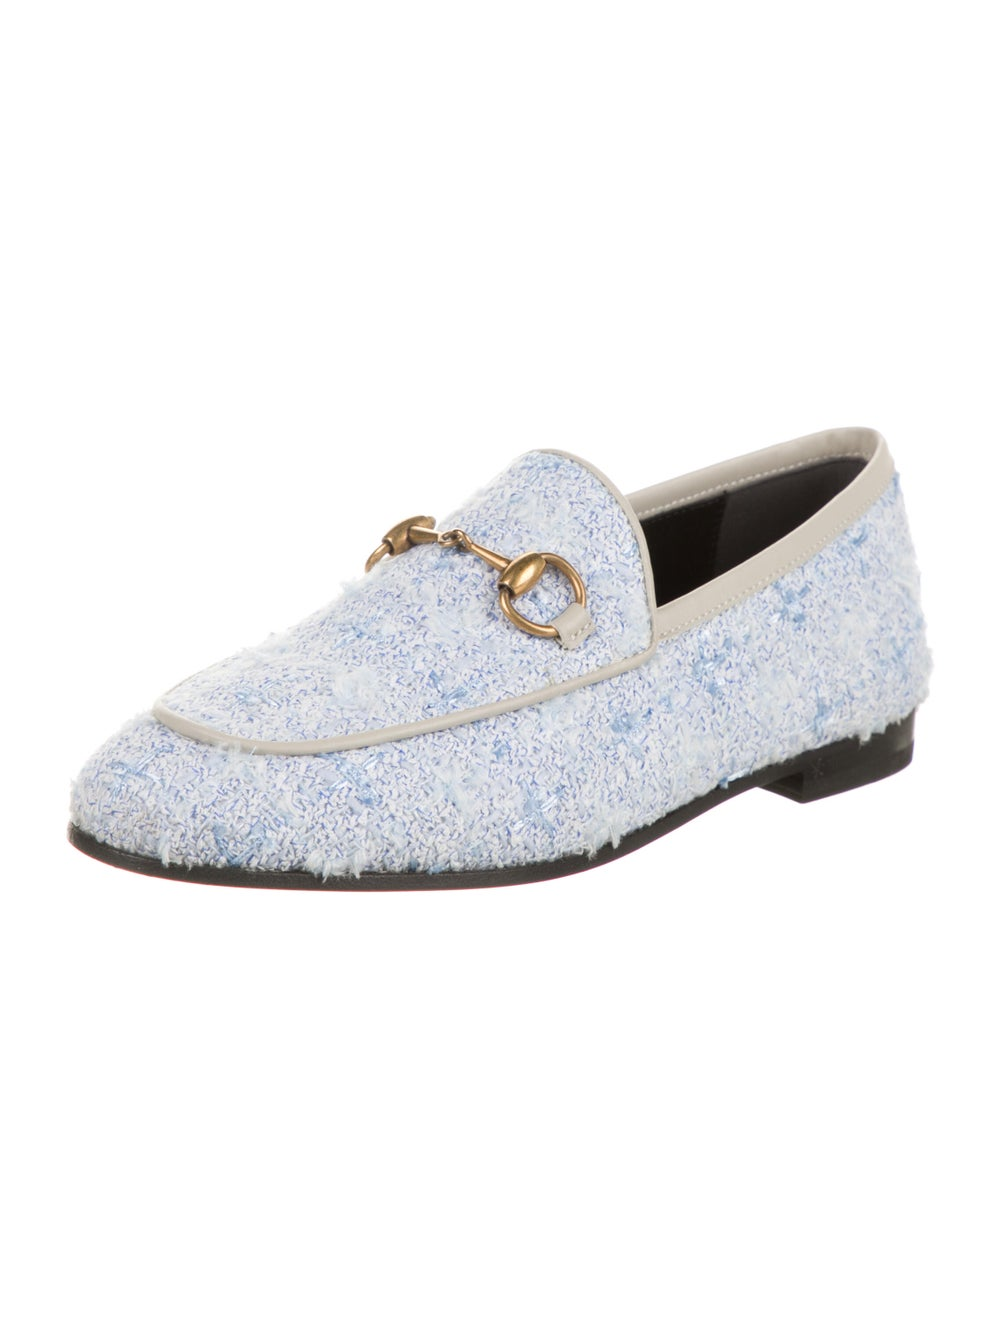 Gucci Horsebit Accent Tweed Pattern Loafers w/ Ta… - image 2